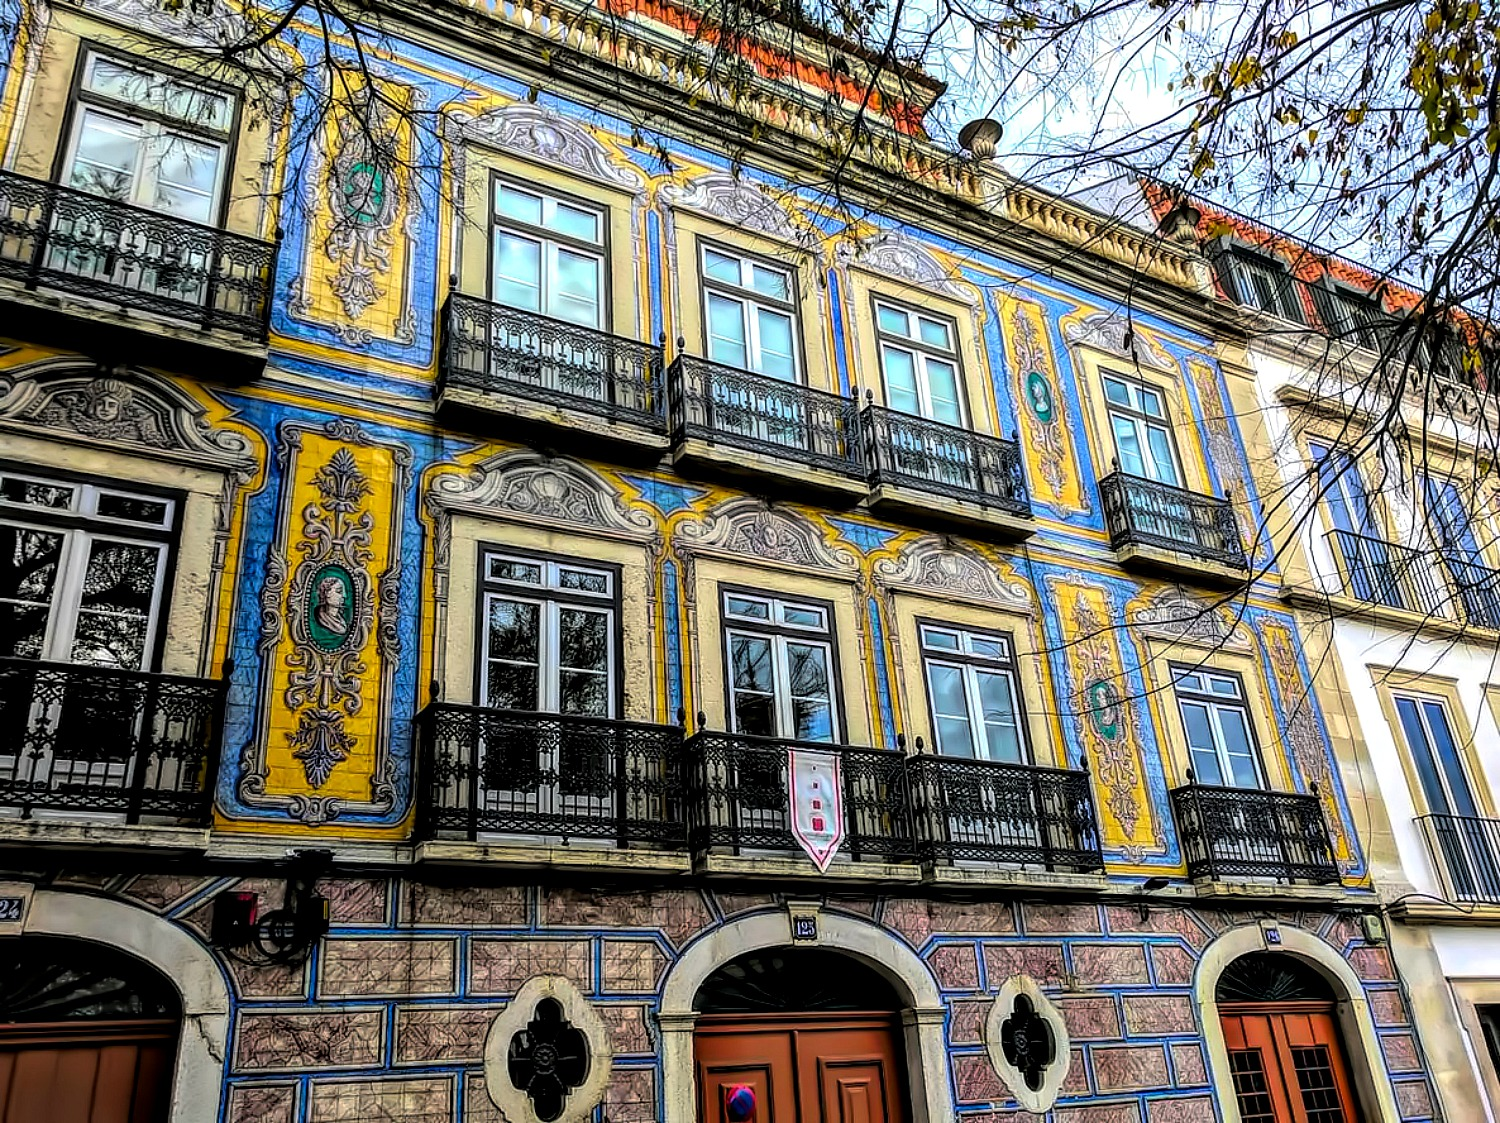 Portugal - one week itinerary. How is this for your house siding?